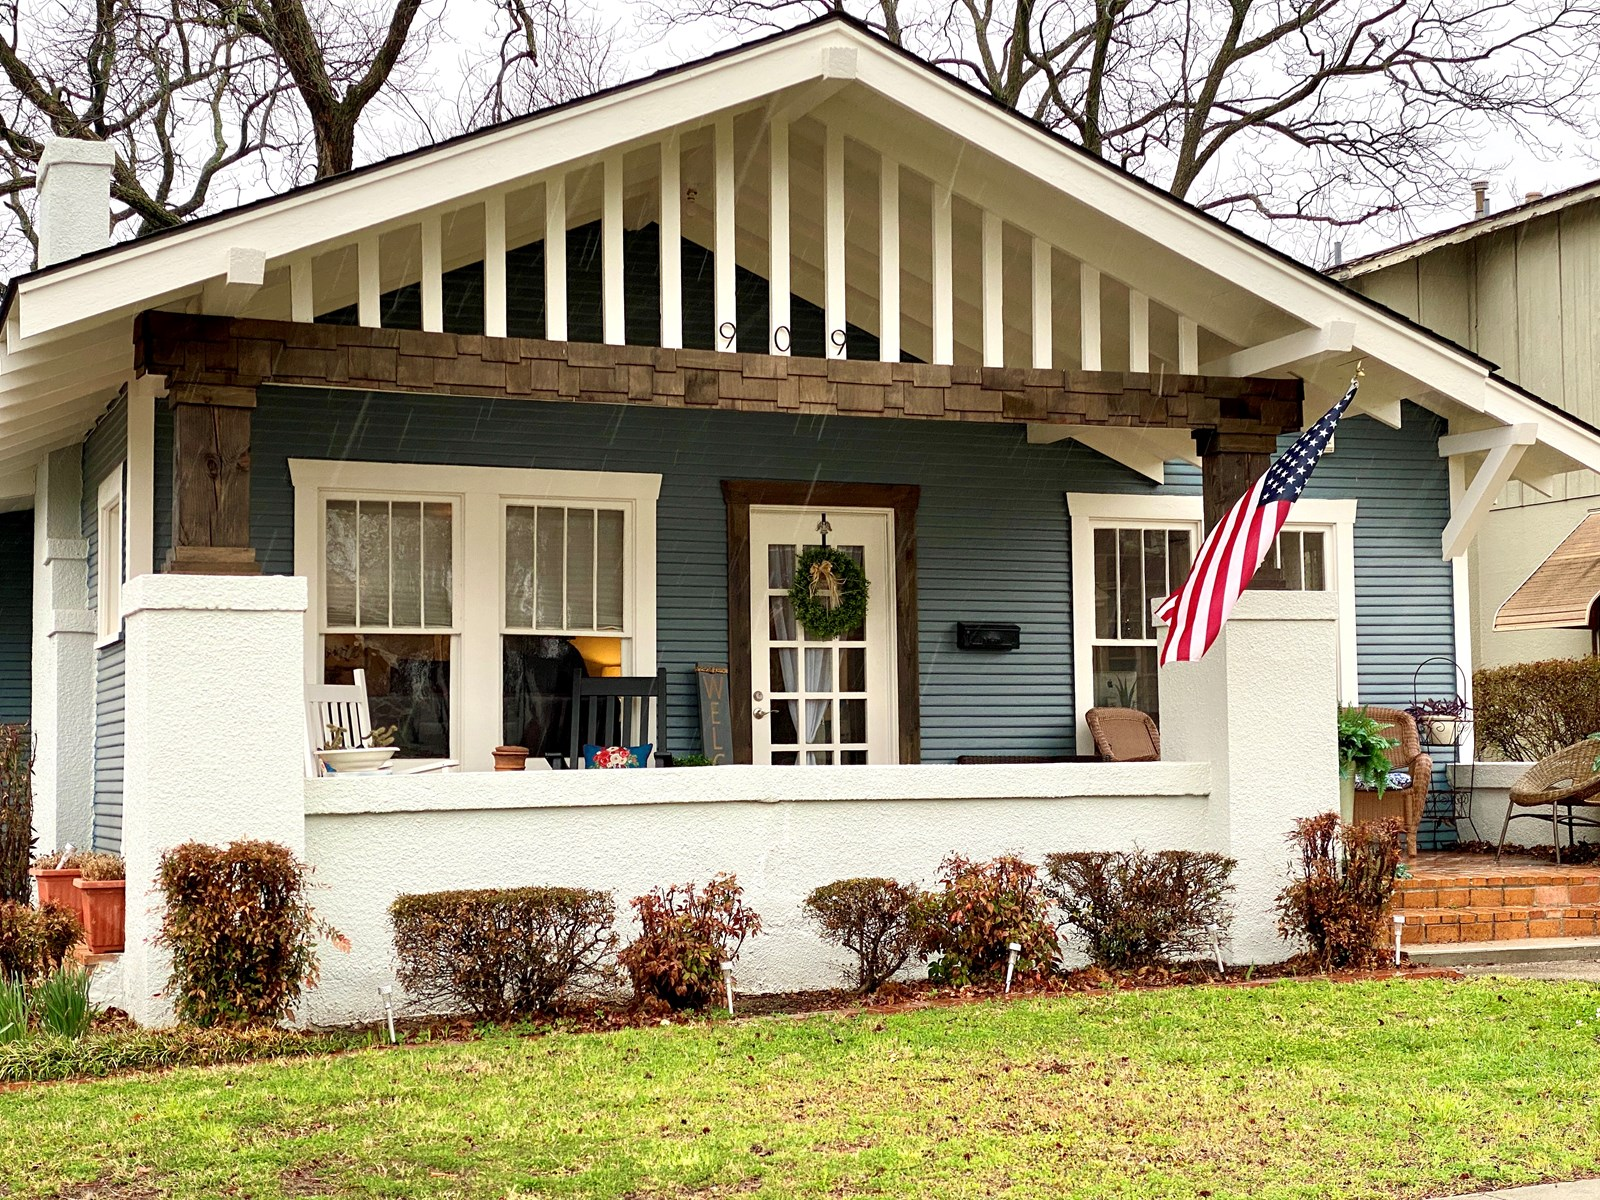 CHARMING HISTORIC REMODELED 4 BEDROOM HOME- ARDMORE, OK